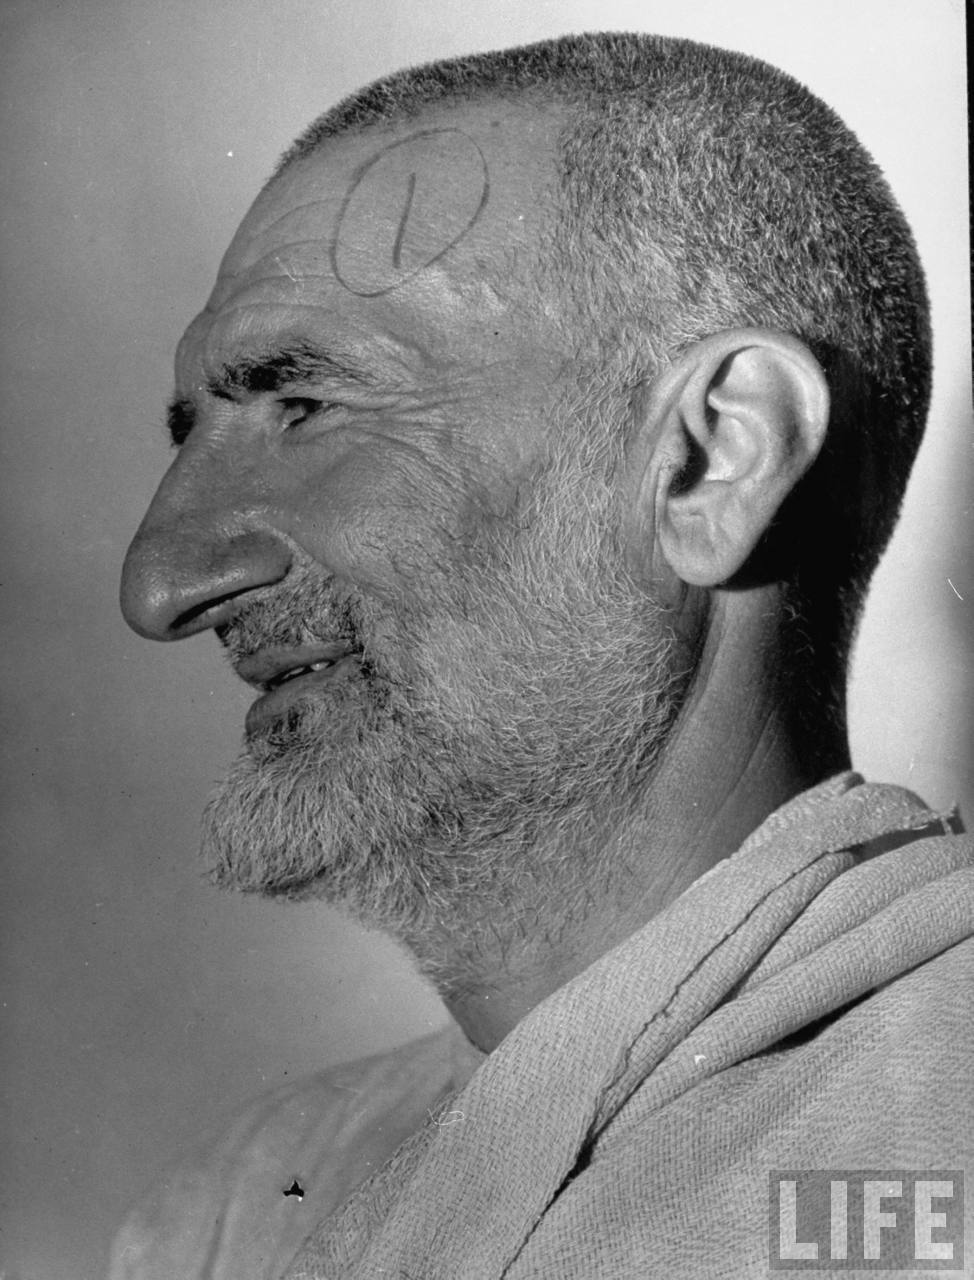 Abdul Ghaffar Khan, know as the Frontier Gandhi - 1946